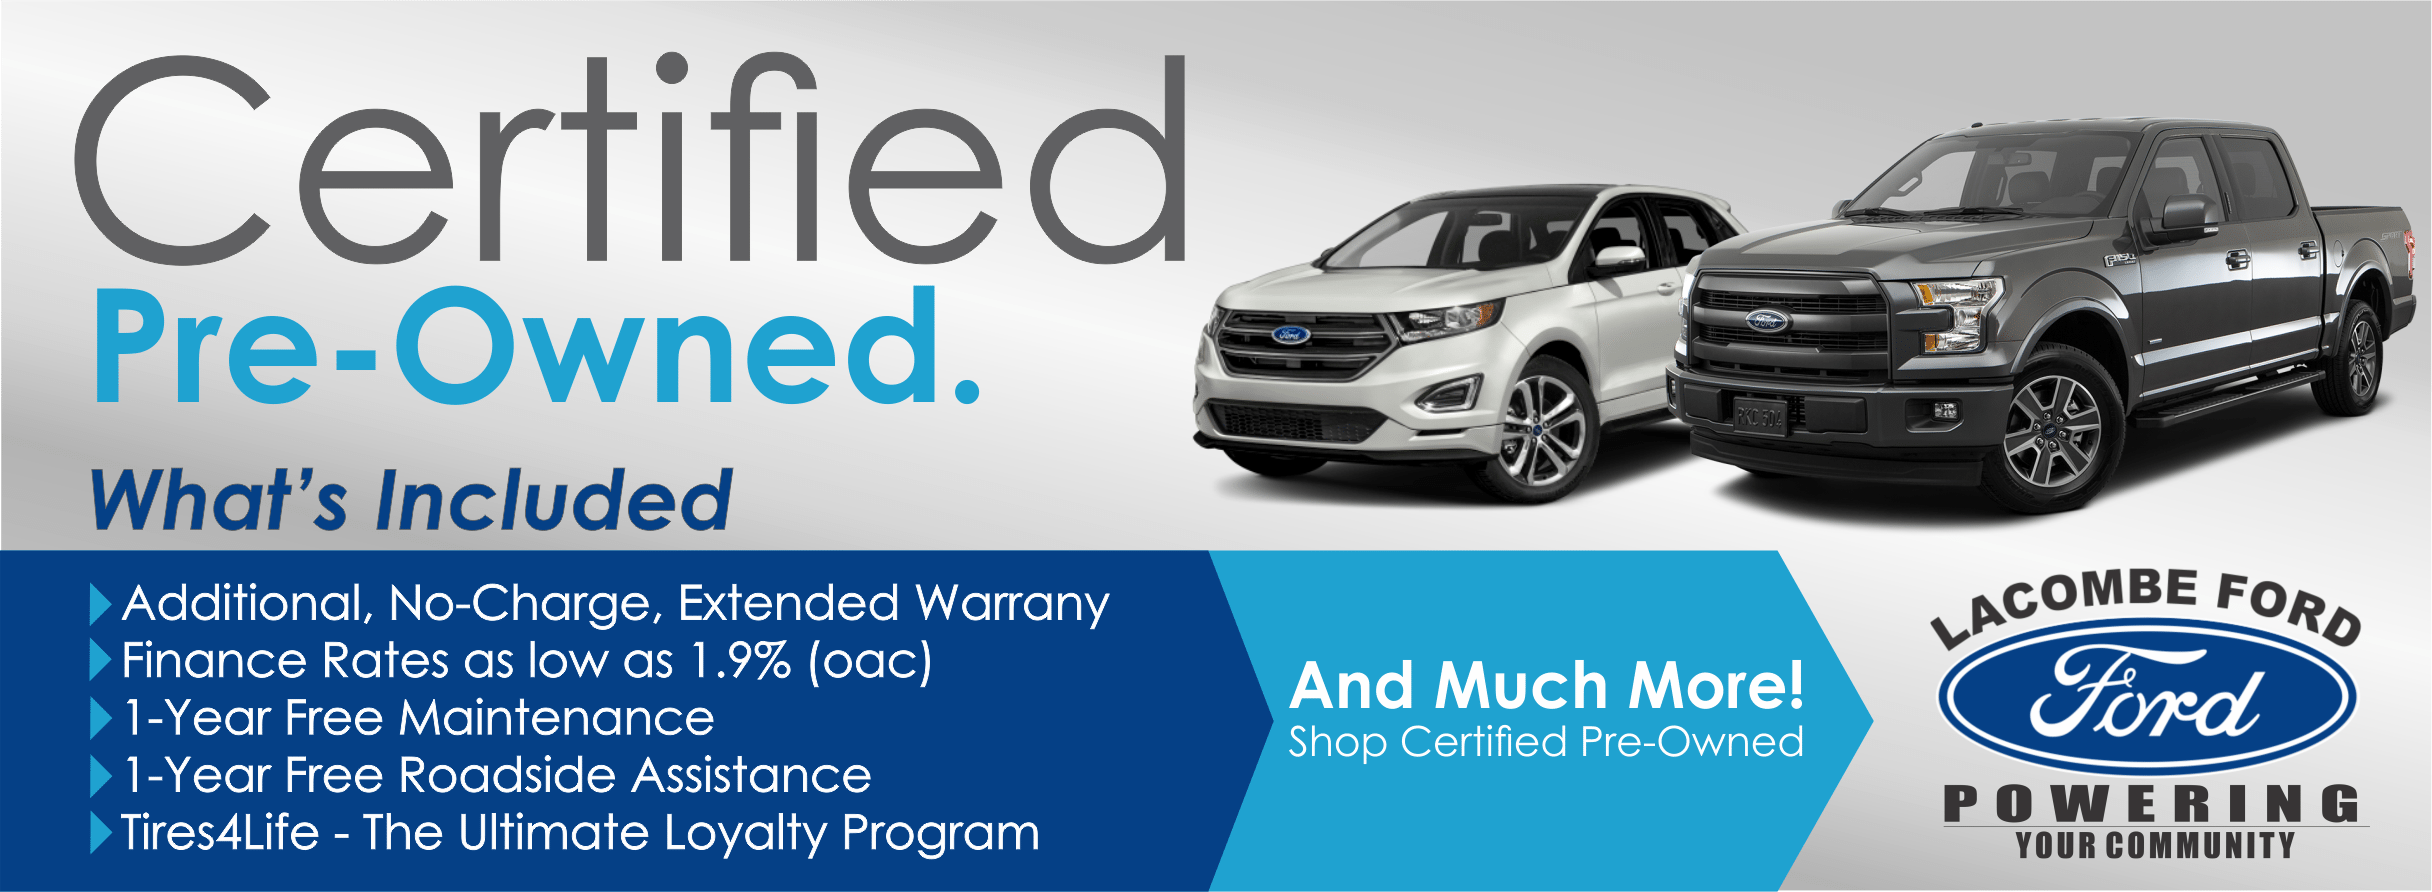 ford certified preowned vehicles at lacombe ford